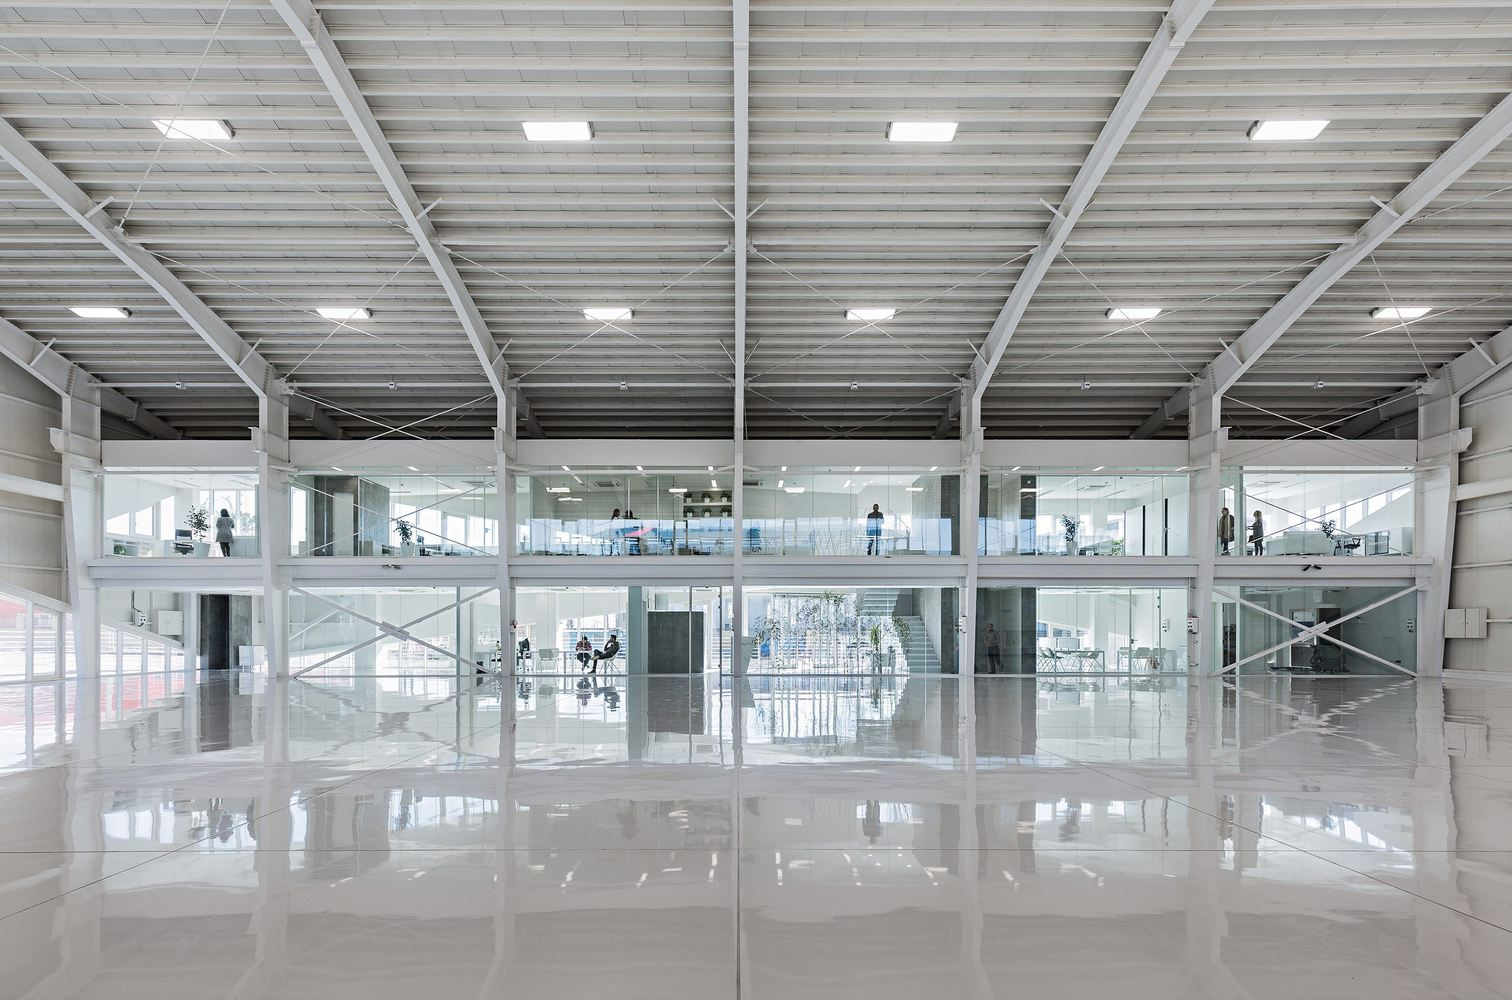 6_System Warehouse_Olgooco Architecture_Inspirationist